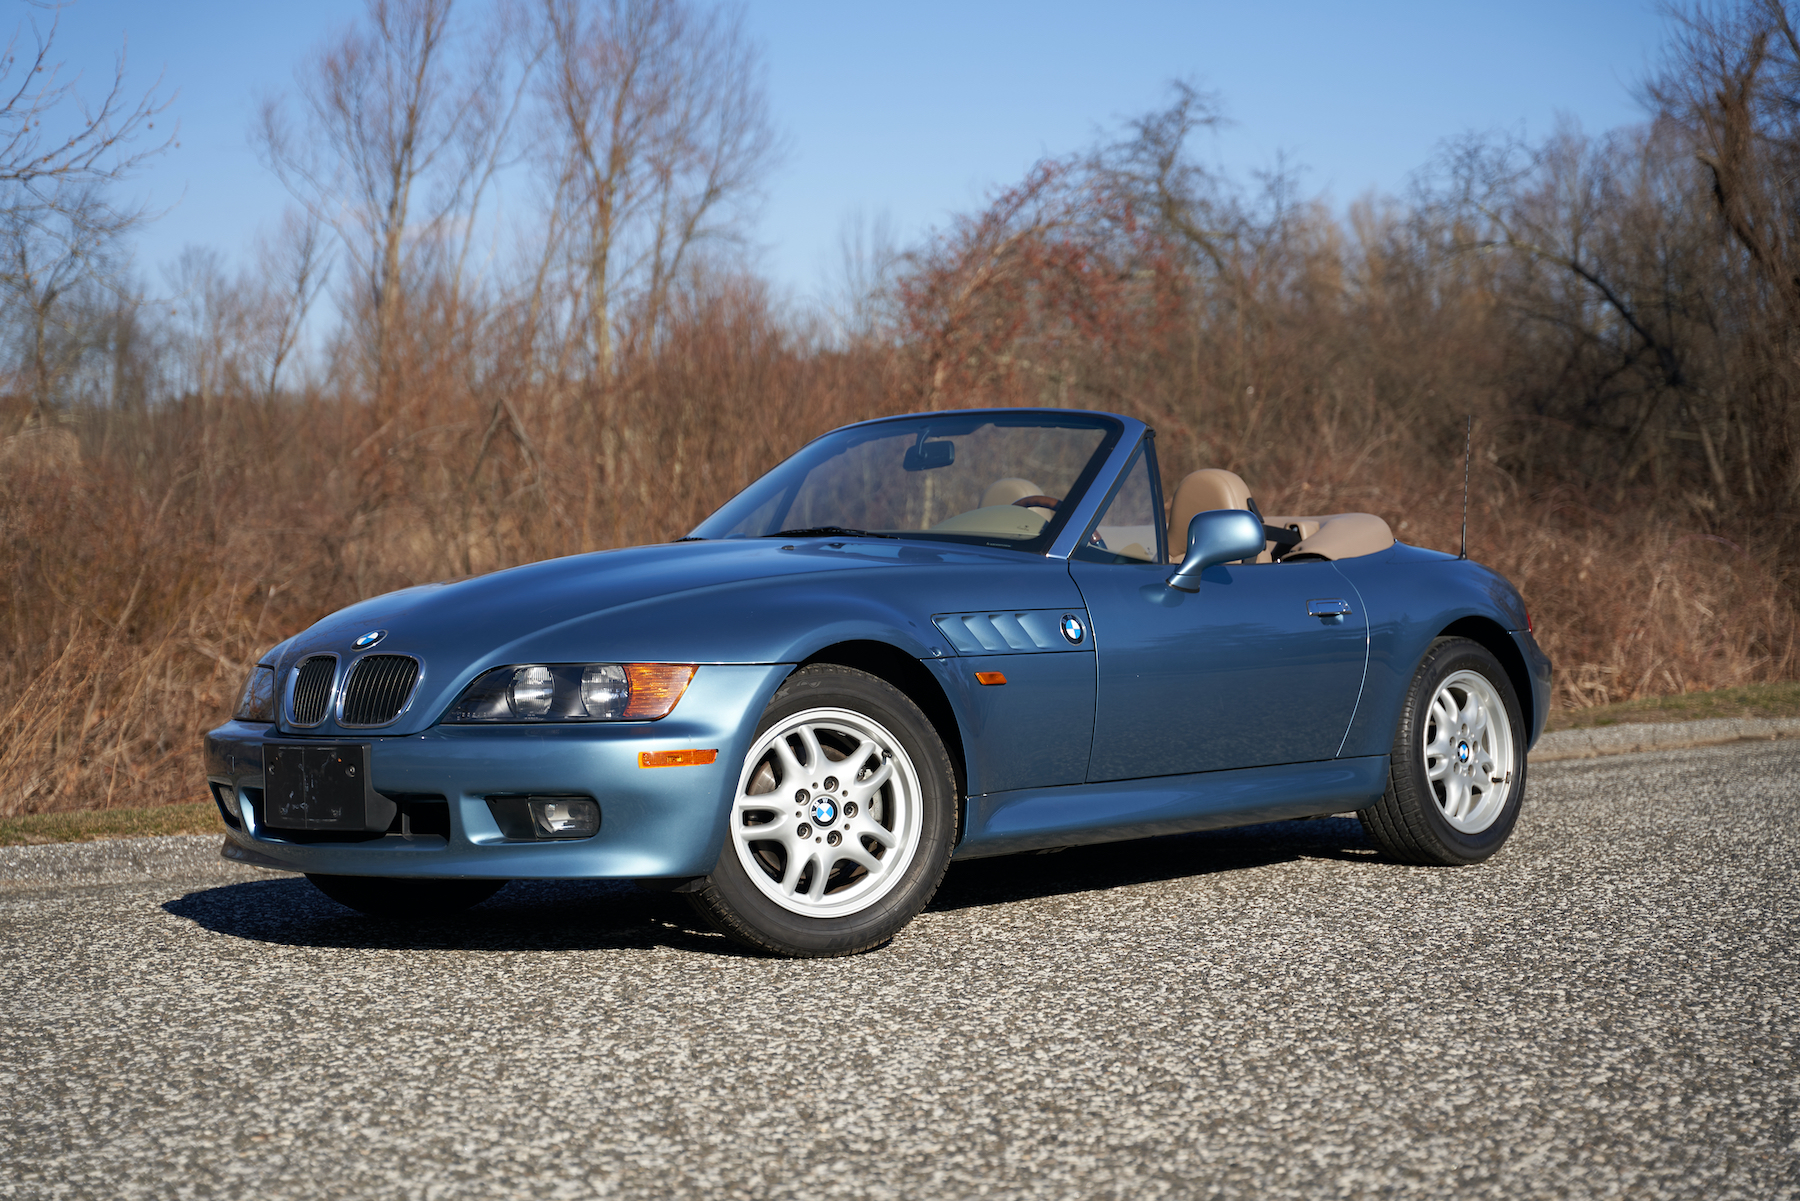 BMW Z3 Roadster 007 Edition Now LIVE on Bring A Trailer!